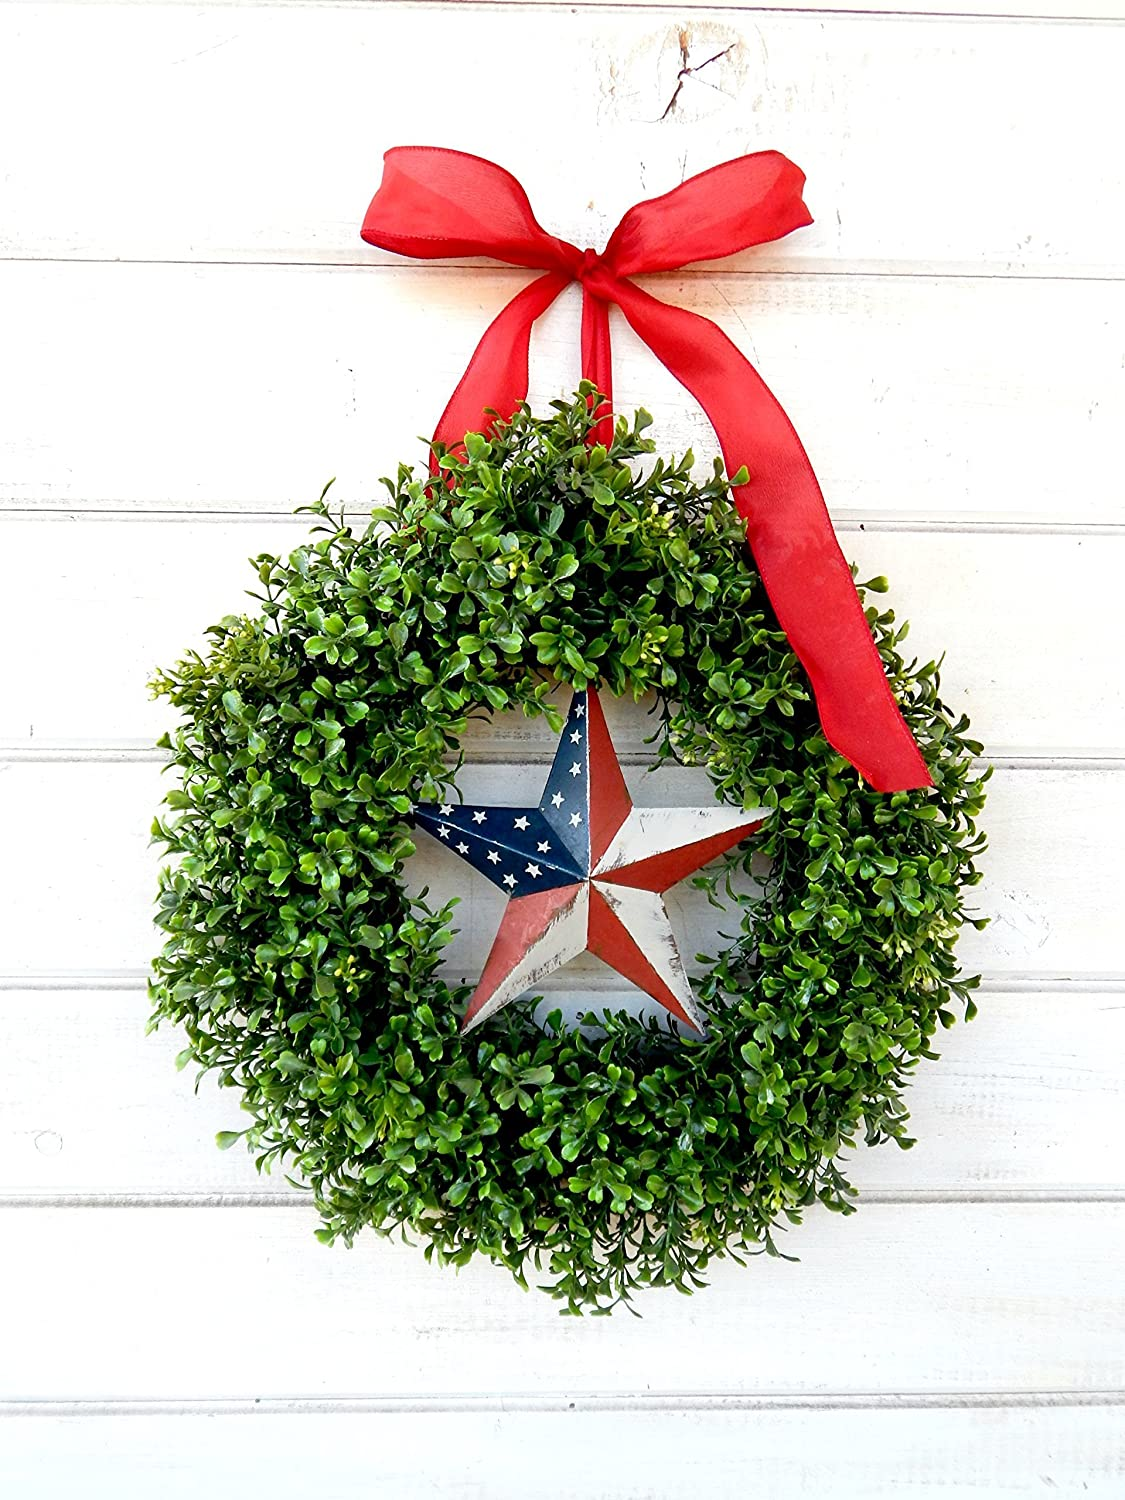 Boxwood Wreath Military Wreath Military Christmas Gift 4th of July Decor Summer Home Decor Summer Wreath Patriotic Gift Patriotic Wreath USA Decor July 4th Wreath